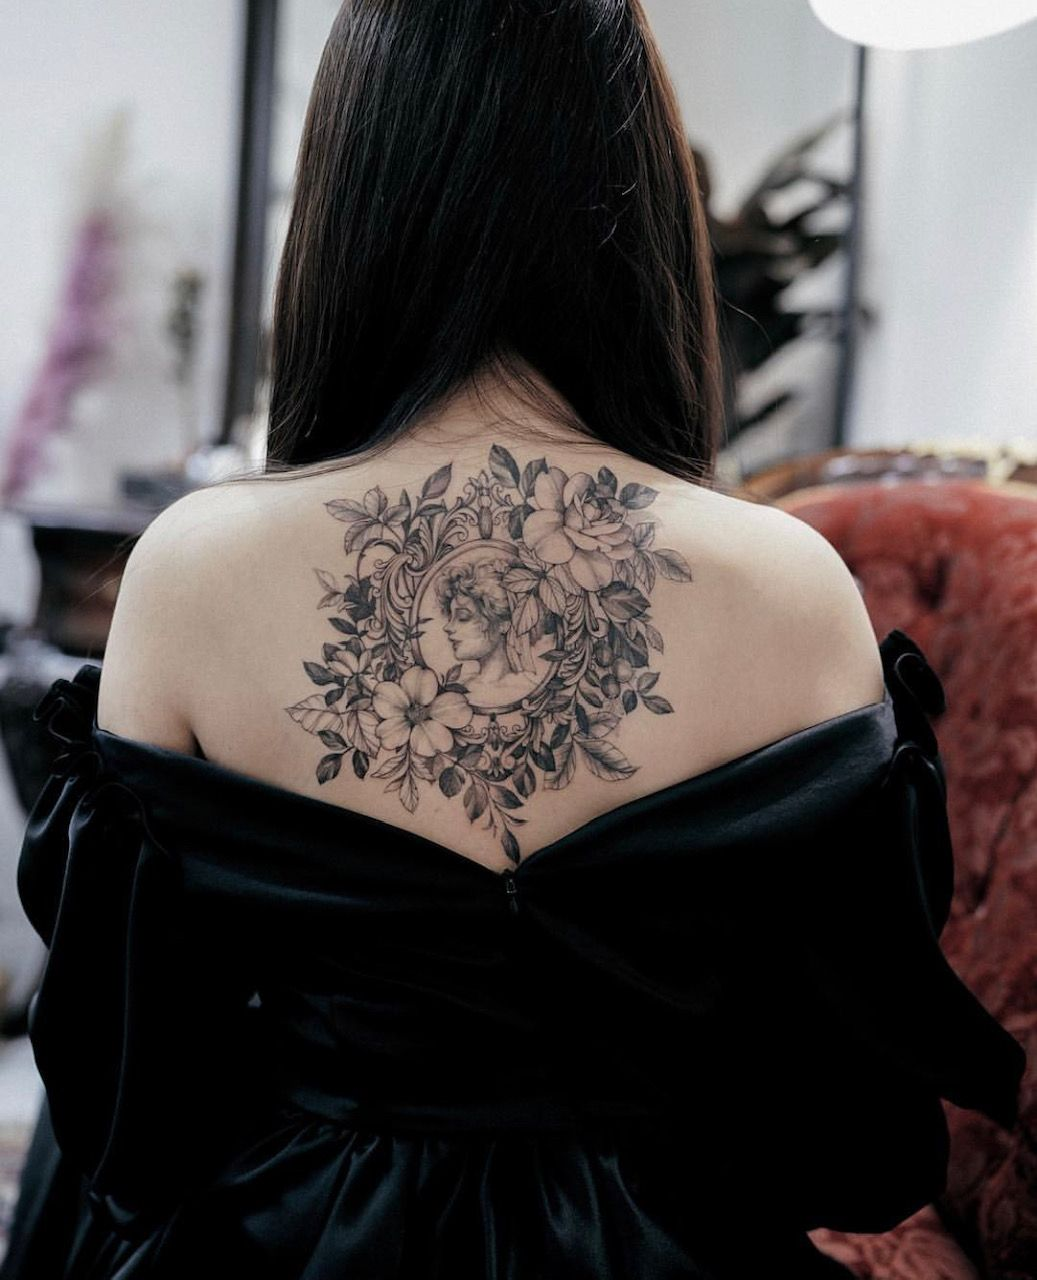 6 Designers Turned Tattoo Artists to Follow on Instagram